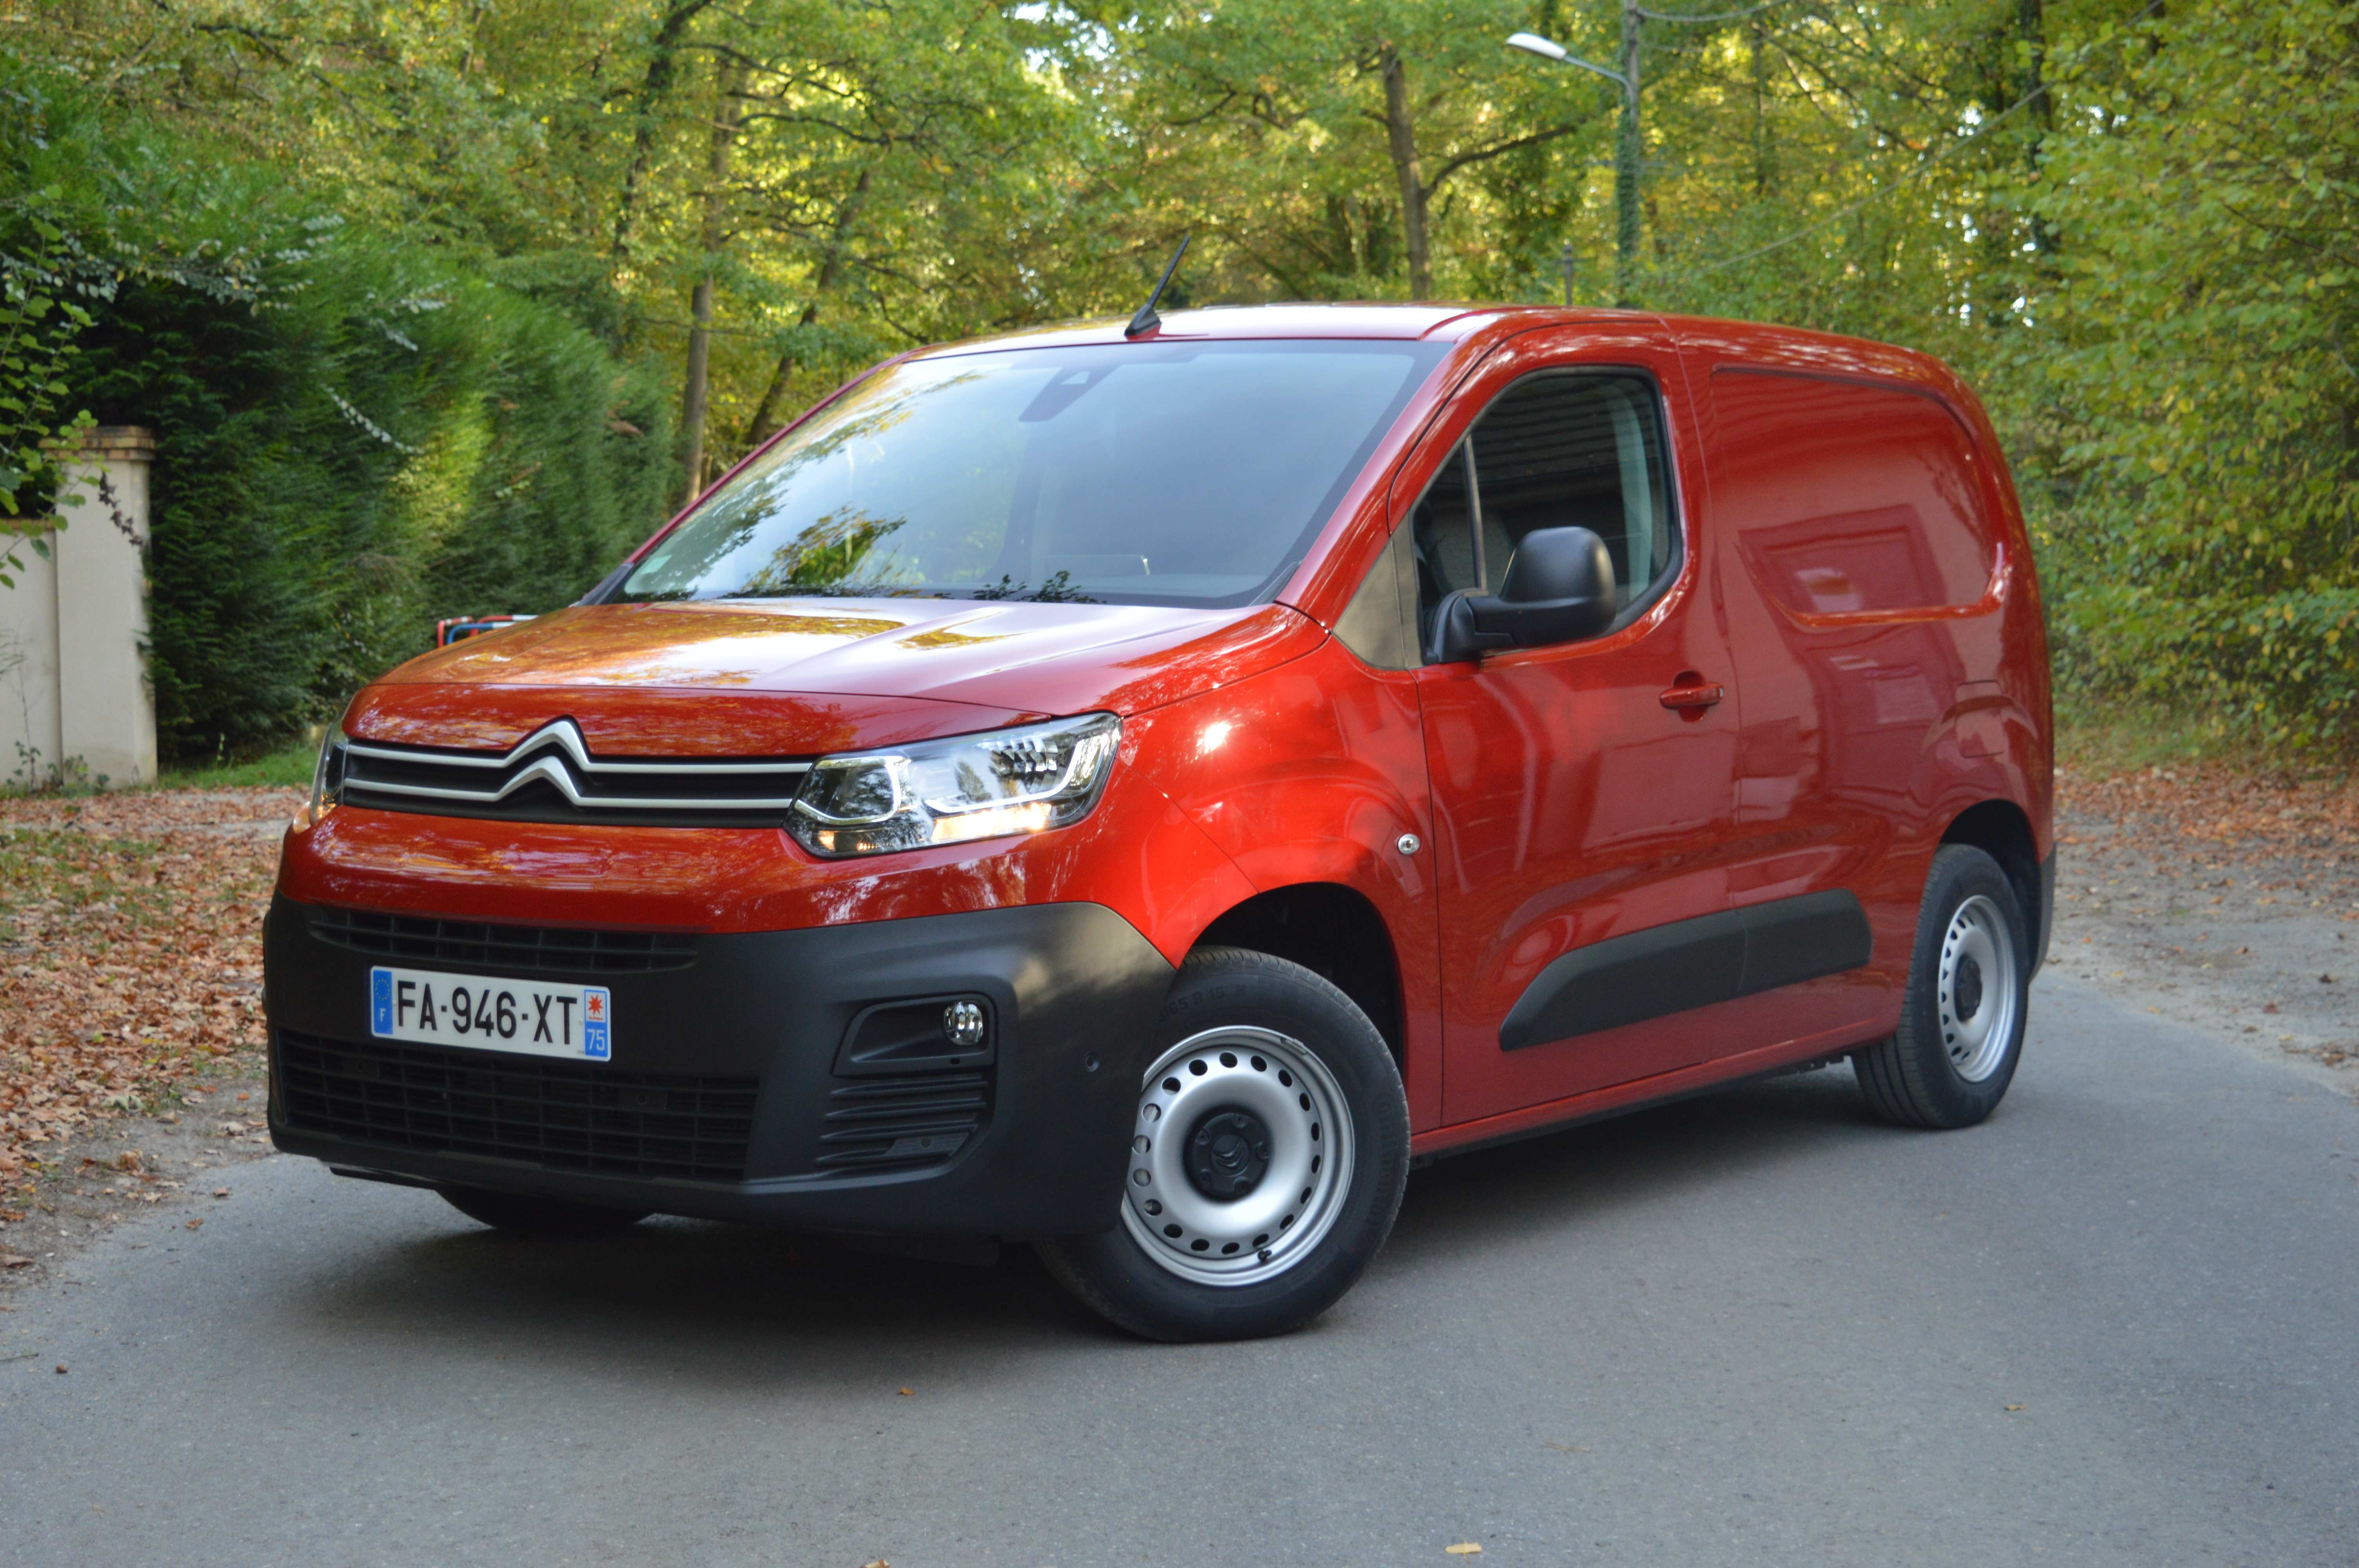 76 Concept of Citroen Berlingo 2020 Redesign with Citroen Berlingo 2020